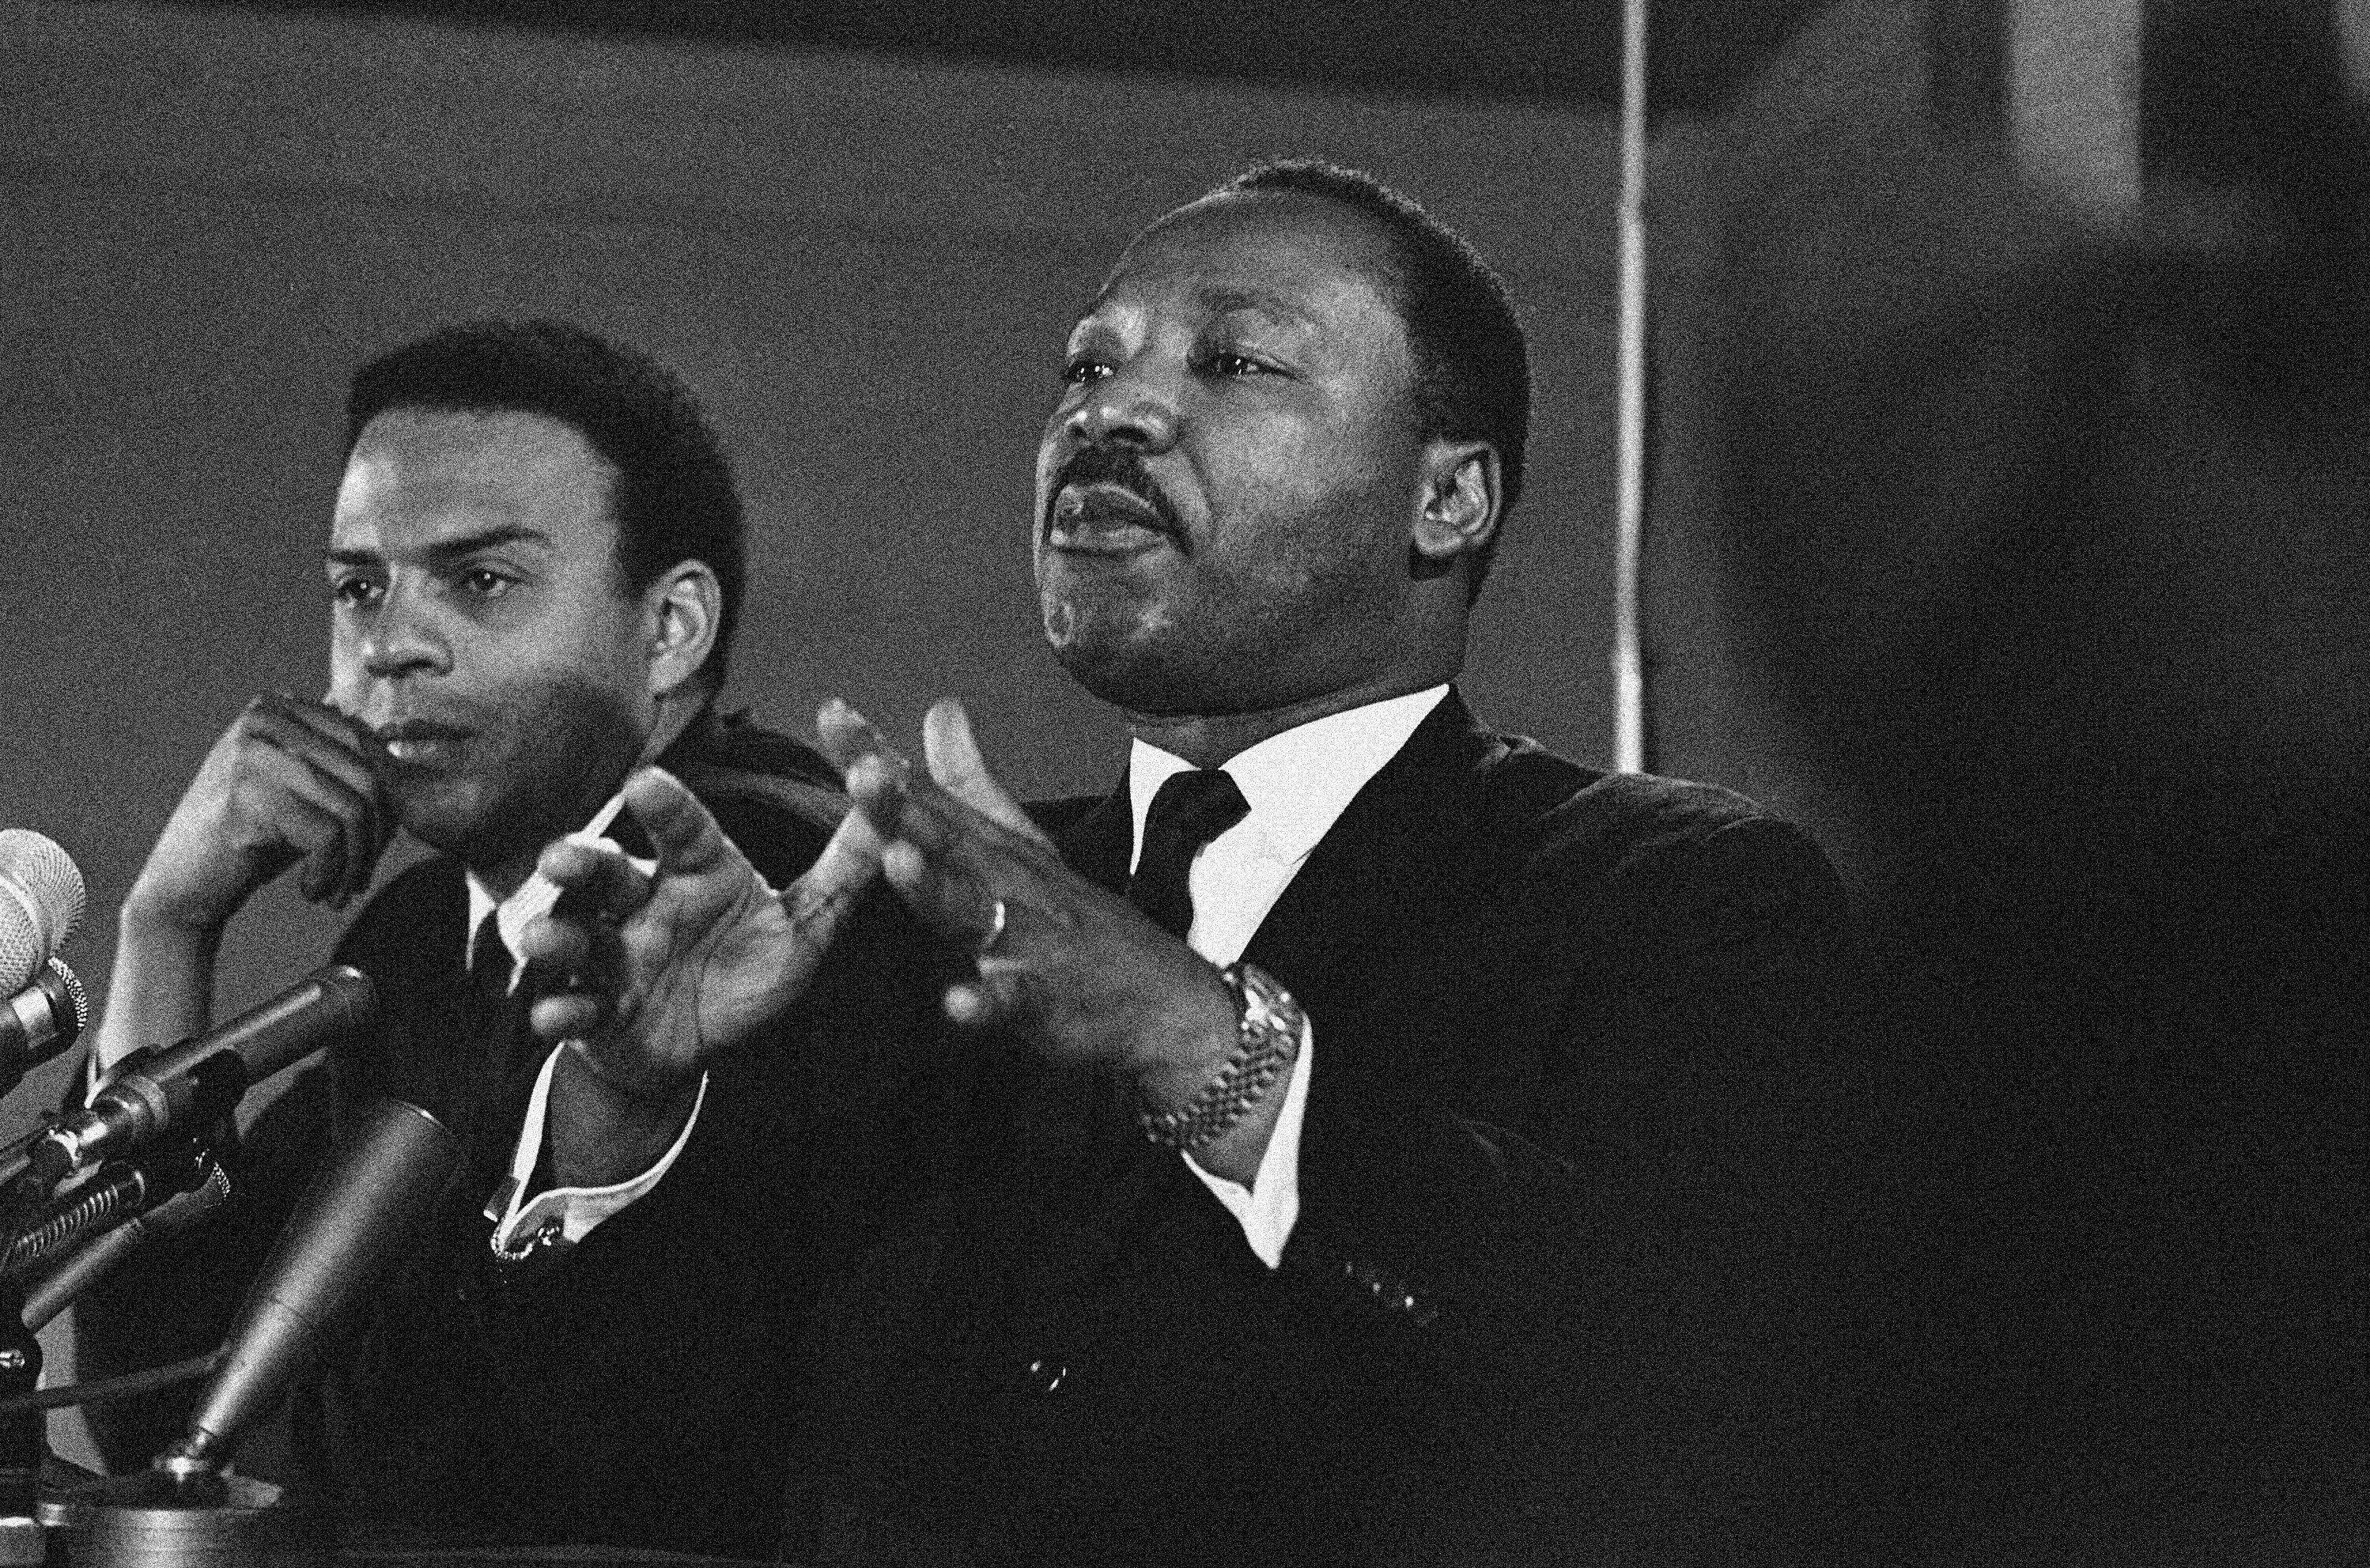 On Feb. 7, 1968, the Rev. Dr. Martin Luther King Jr., center, speaks to an audience, while promising a massive demonstration in the spring in Washington and hinting the crusade may be extended to the political party conventions in August. Veterans of past social movements say the Occupy Wall Street protest has been a welcome response to the abysmal economy and has the potential to galvanize wide support, but whether it will lead to lasting political change remains to be seen.